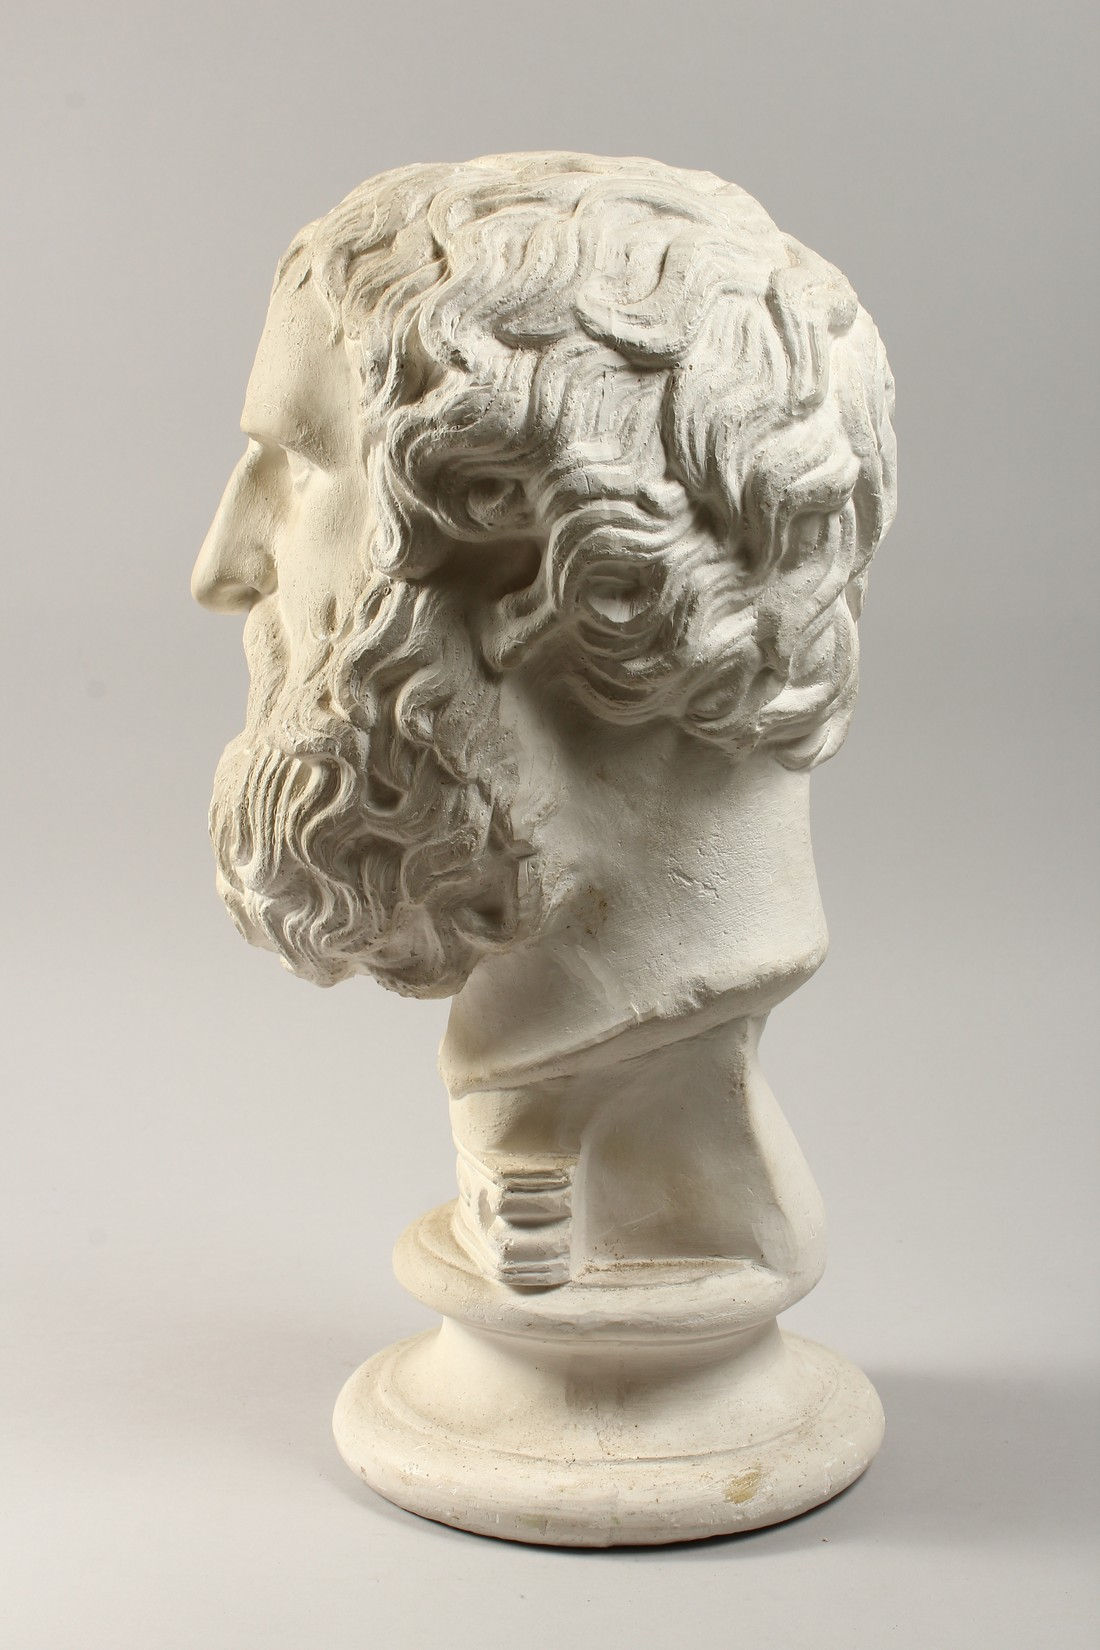 AN ANTIQUE PLASTER BUST 19ins high. - Image 2 of 5